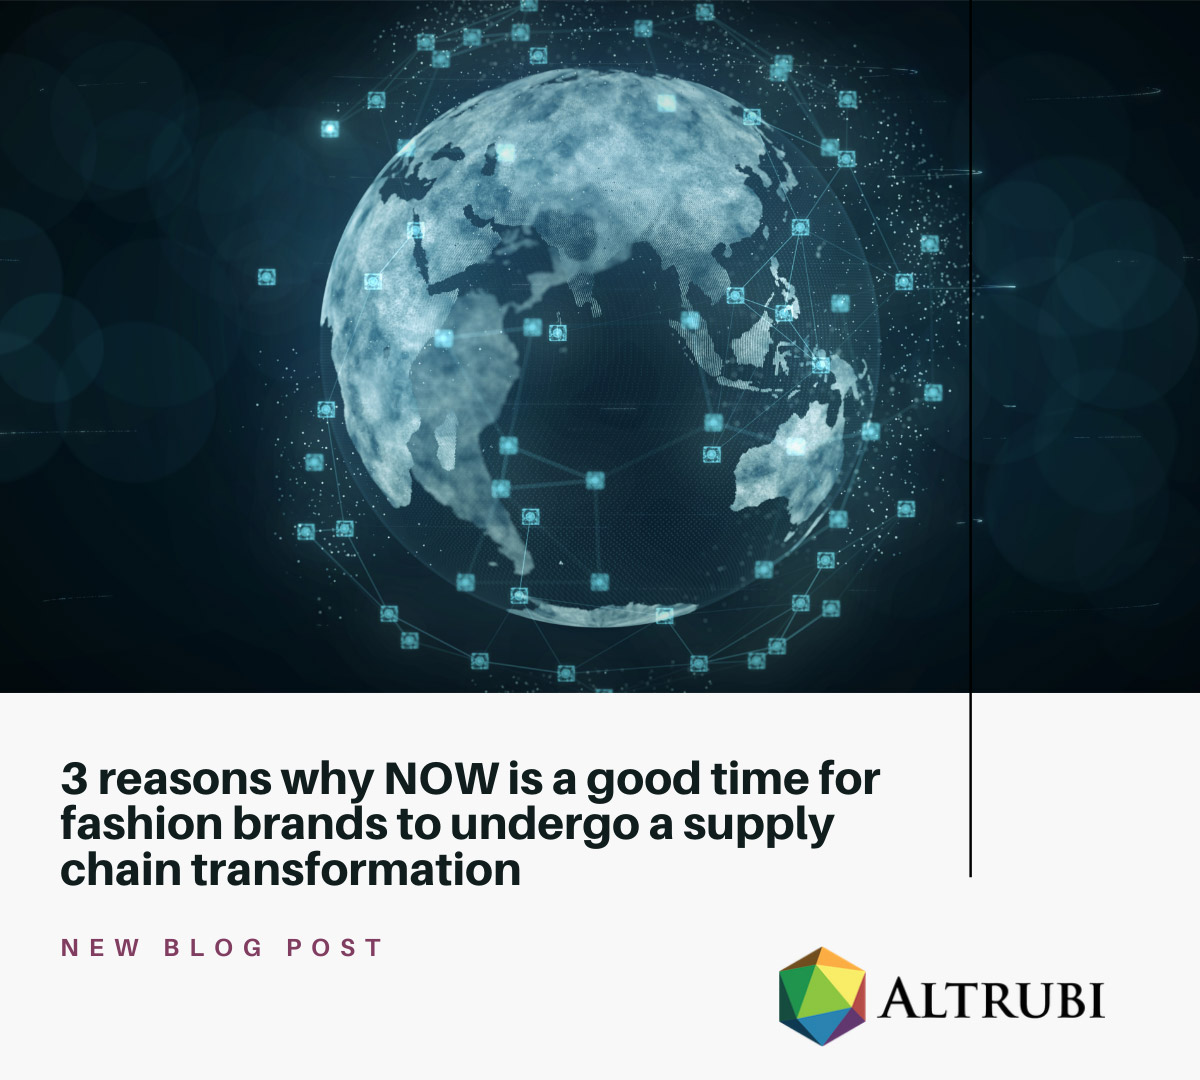 Three reasons why now, is a good time for fashion brands to undergo a supply chain transformation.